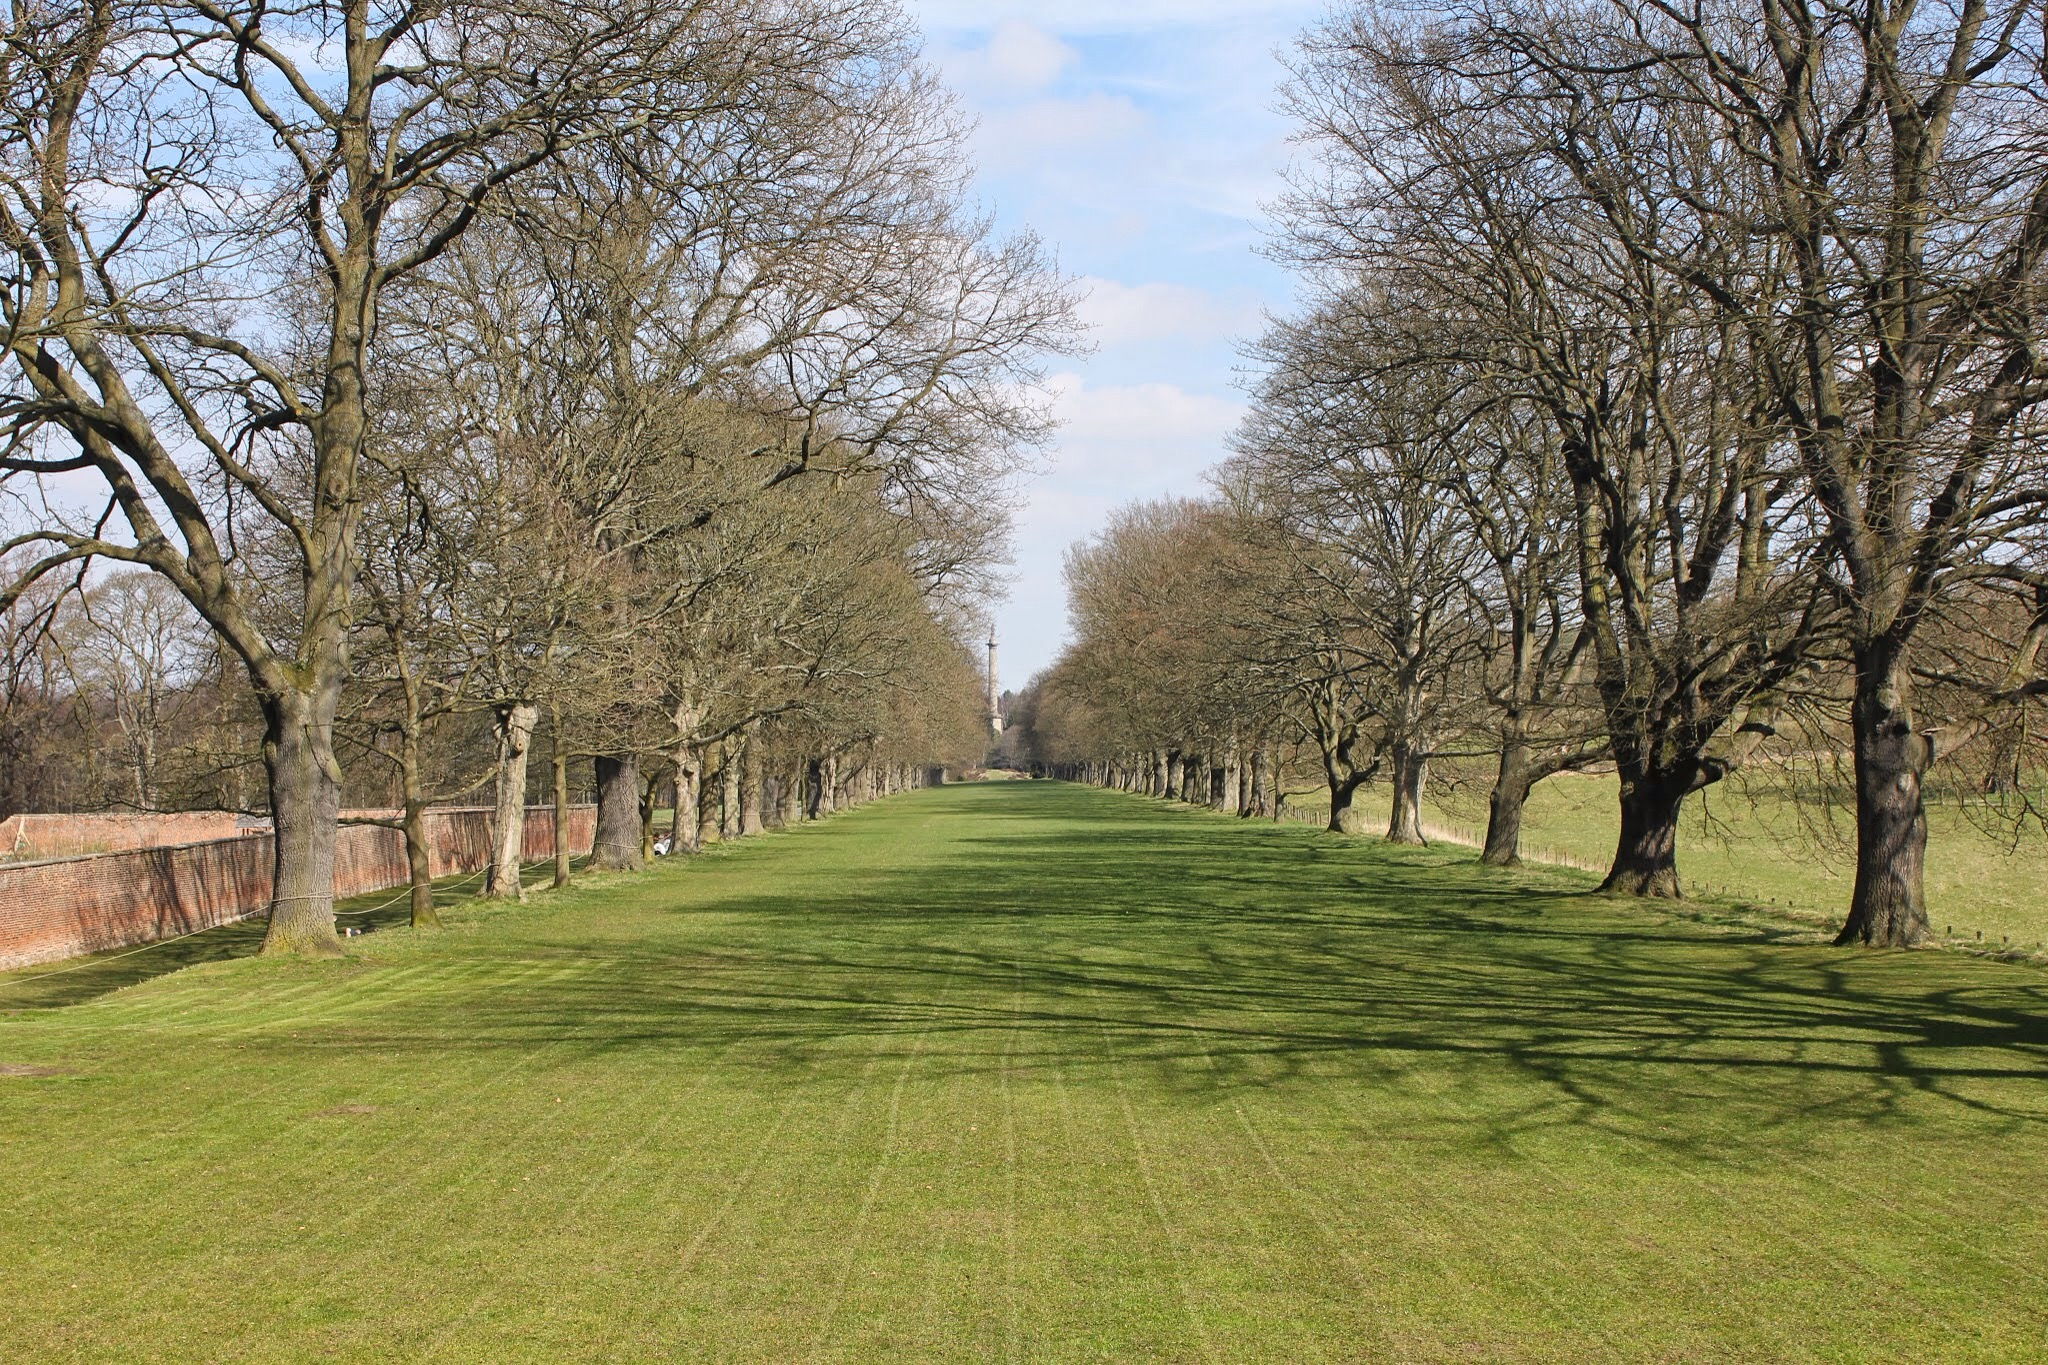 lawn at gibside, view from chapel